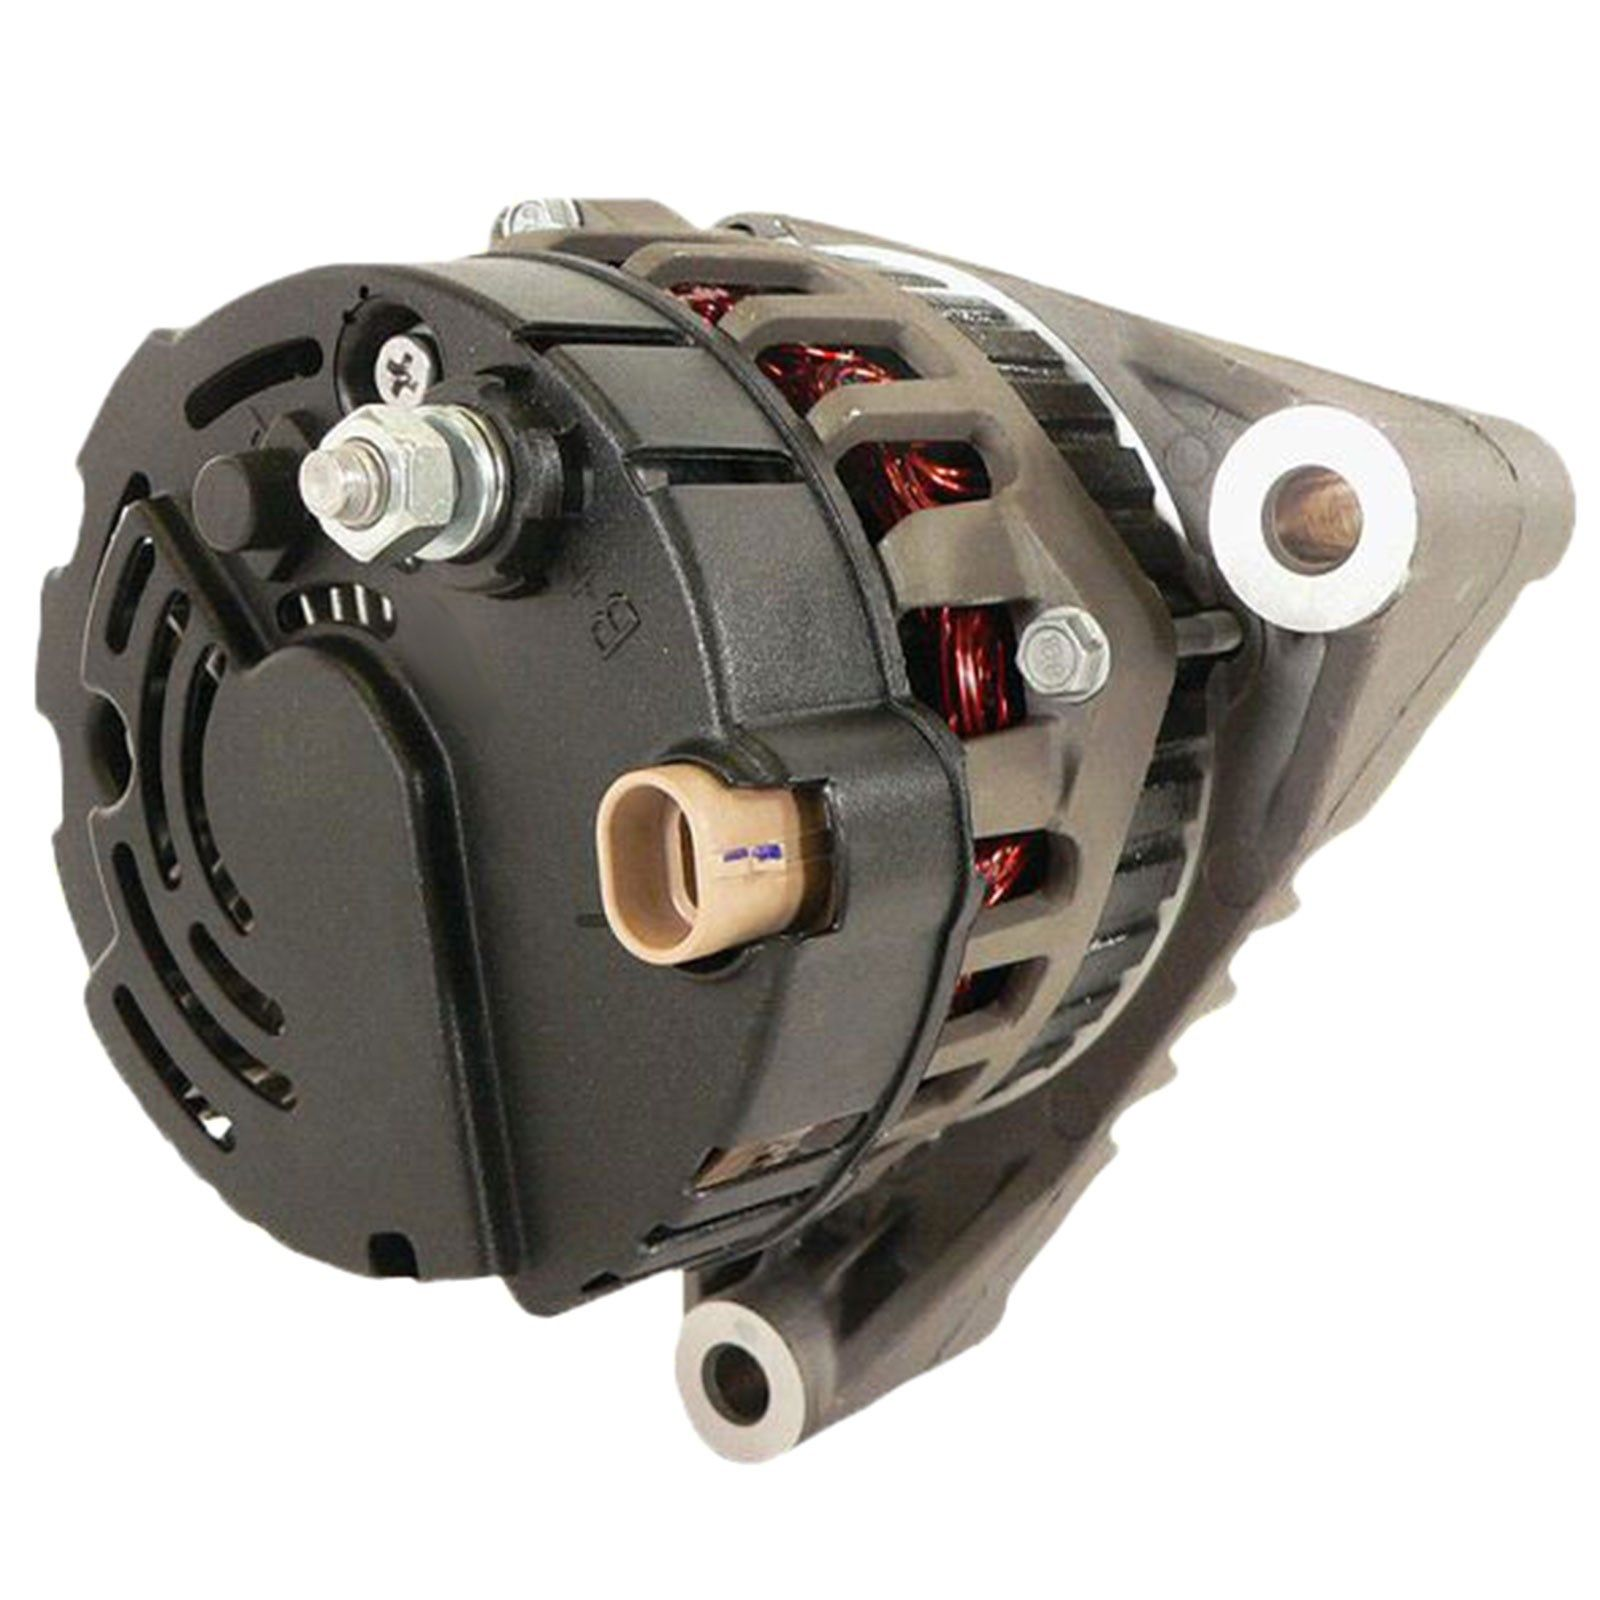 htm extra image elec pelican techarticles volvo replacement parts diy alternator large